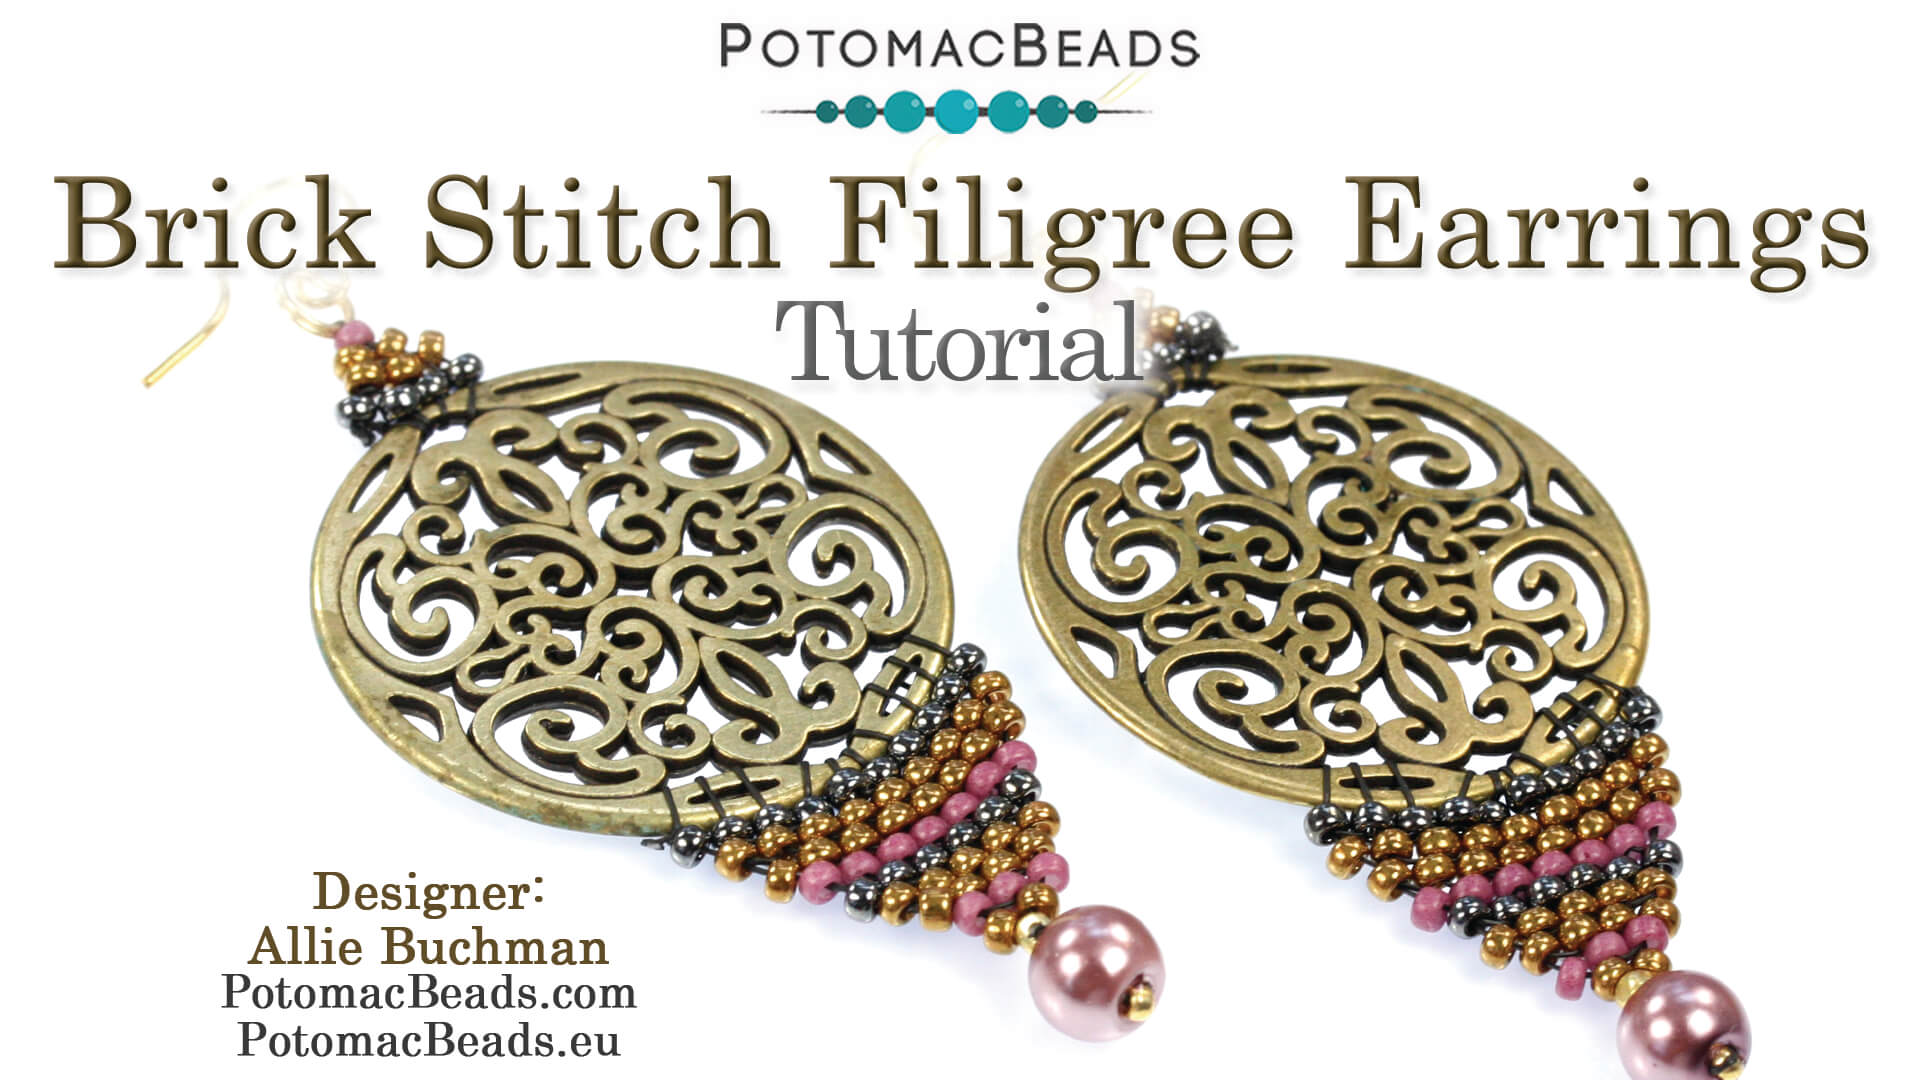 How to Bead Jewelry / Videos Sorted by Beads / All Other Bead Videos / Brick Stitch Filigree Earrings Tutorial